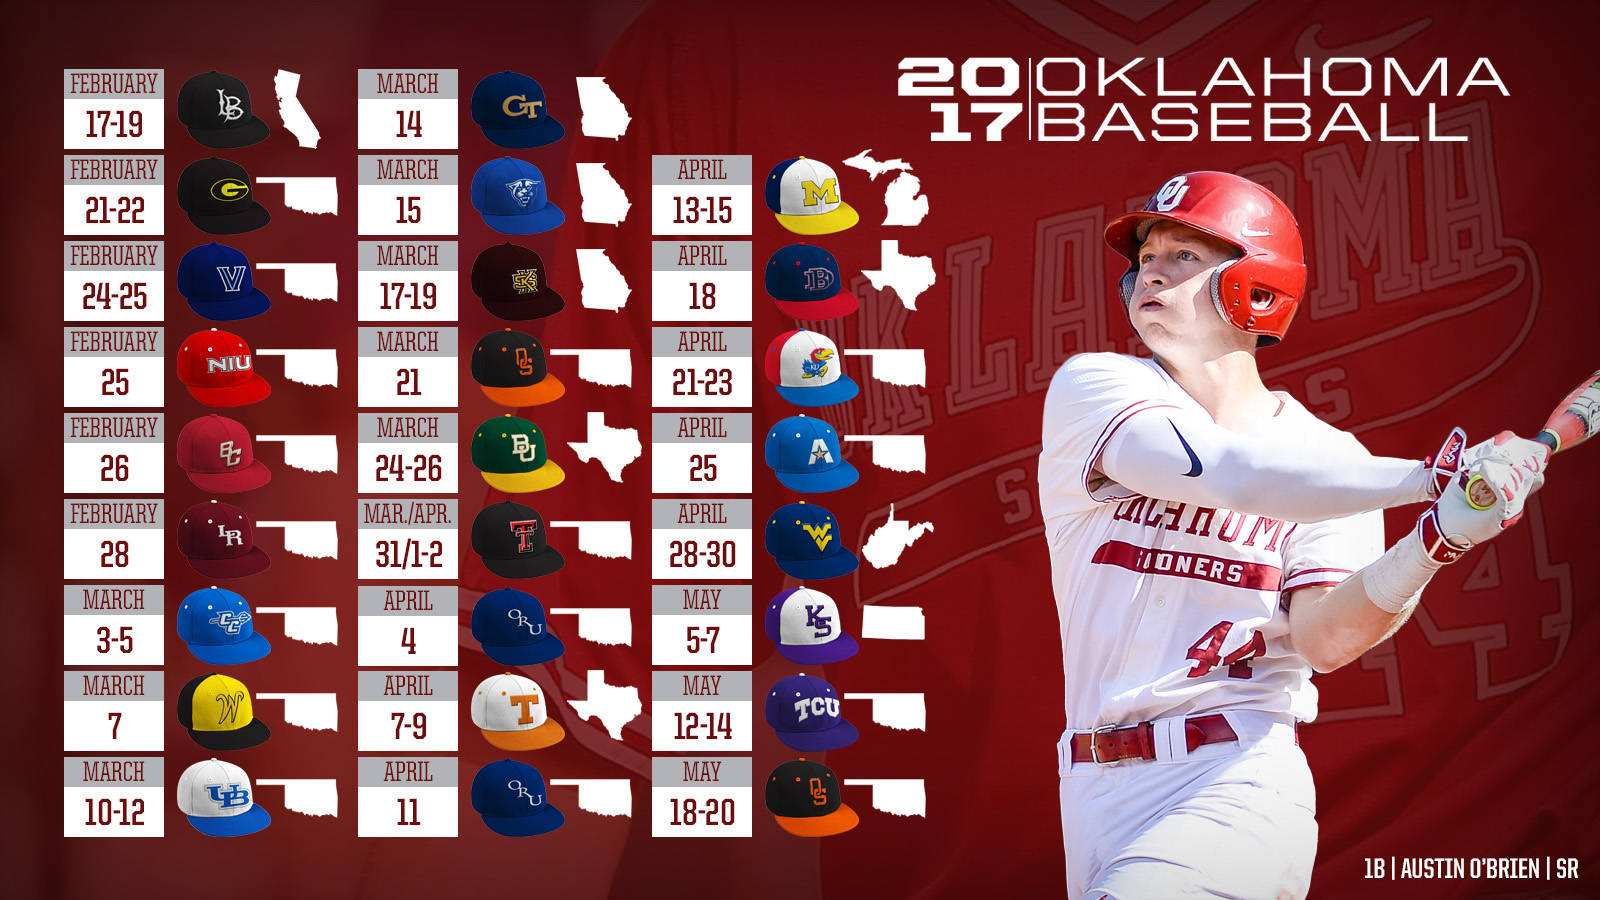 2017 Baseball Schedule Central University Of Oklahoma